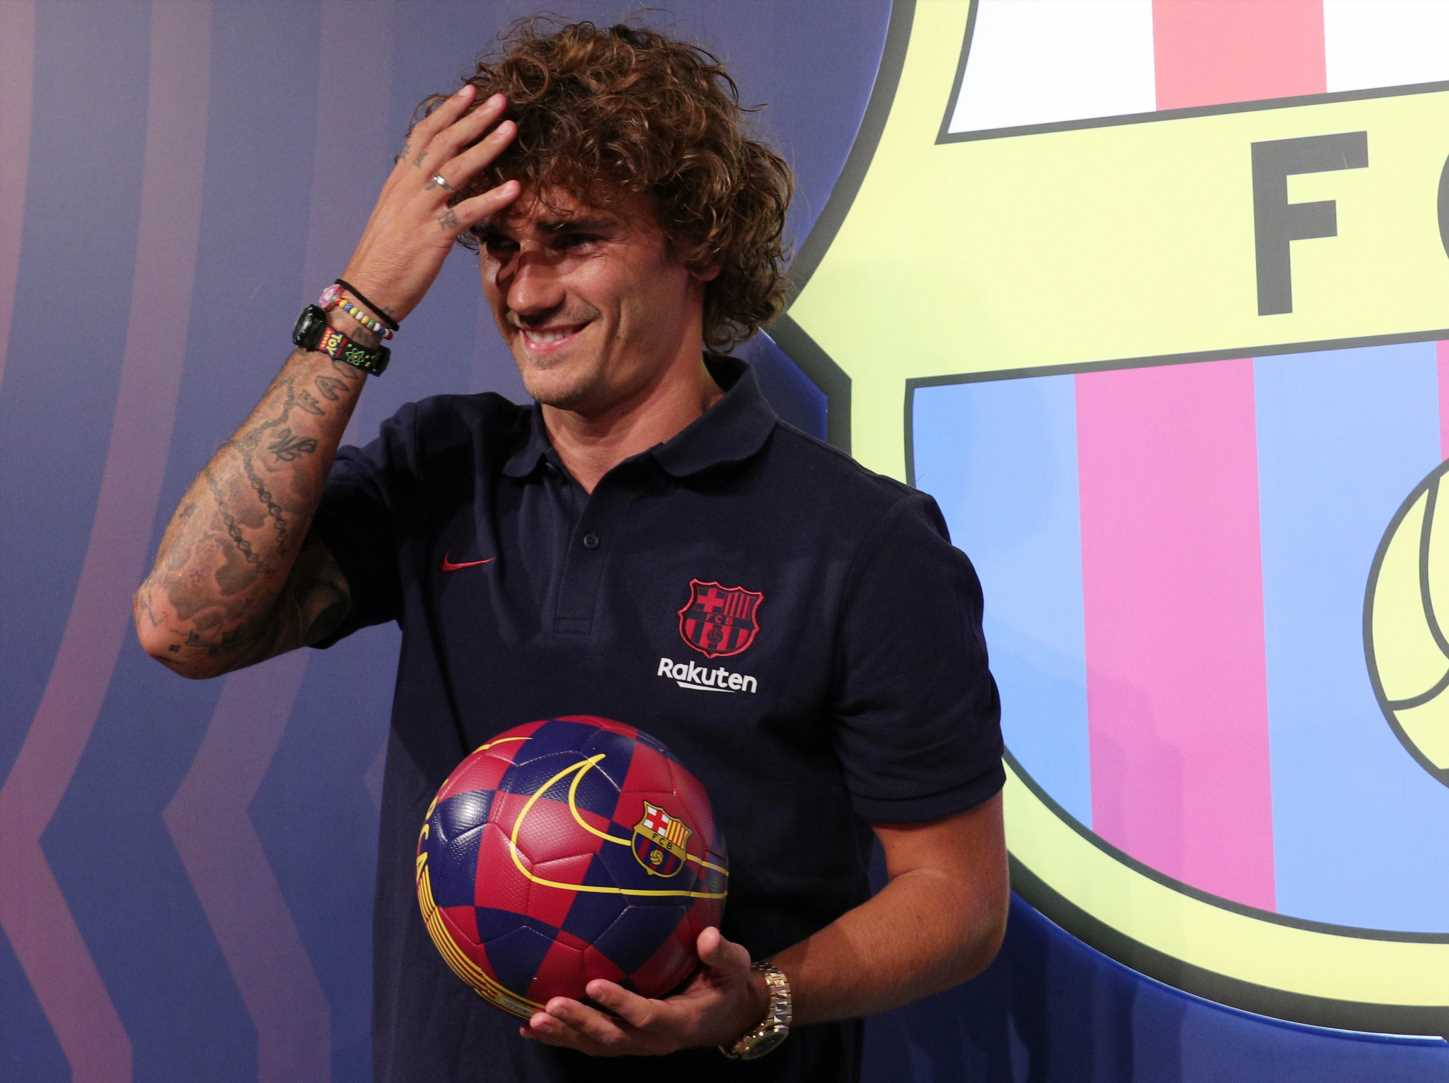 Barcelona a staggering £800MILLION in debt after buying £108m Griezmann from Atletico Madrid – The Sun